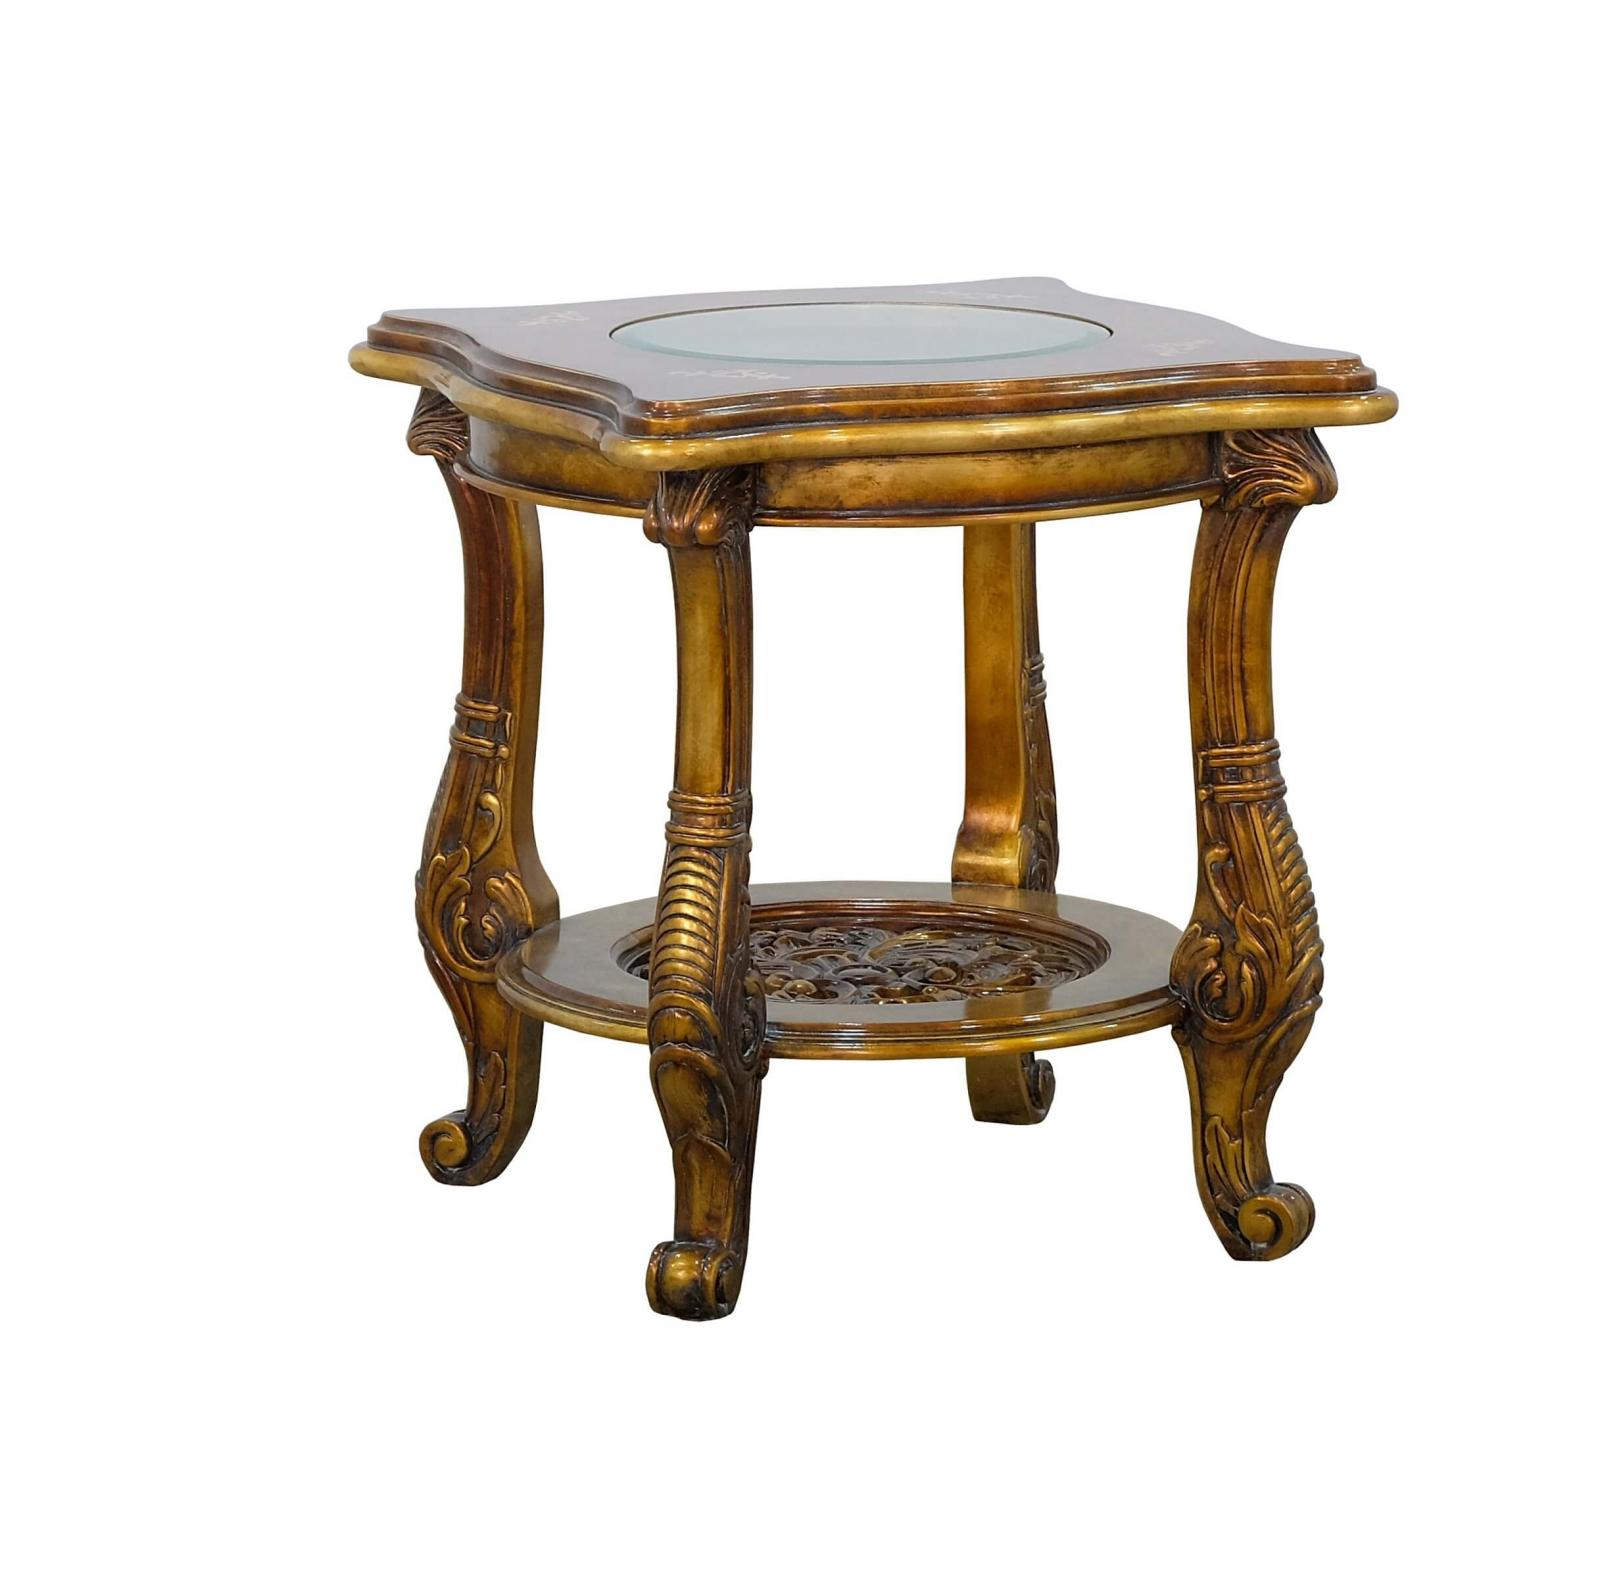 Classic  Traditional Beige  Bronze  Gold  Antique Wood  Solid Hardwood and  End Table EUROPEAN FURNITURE 31055-ET